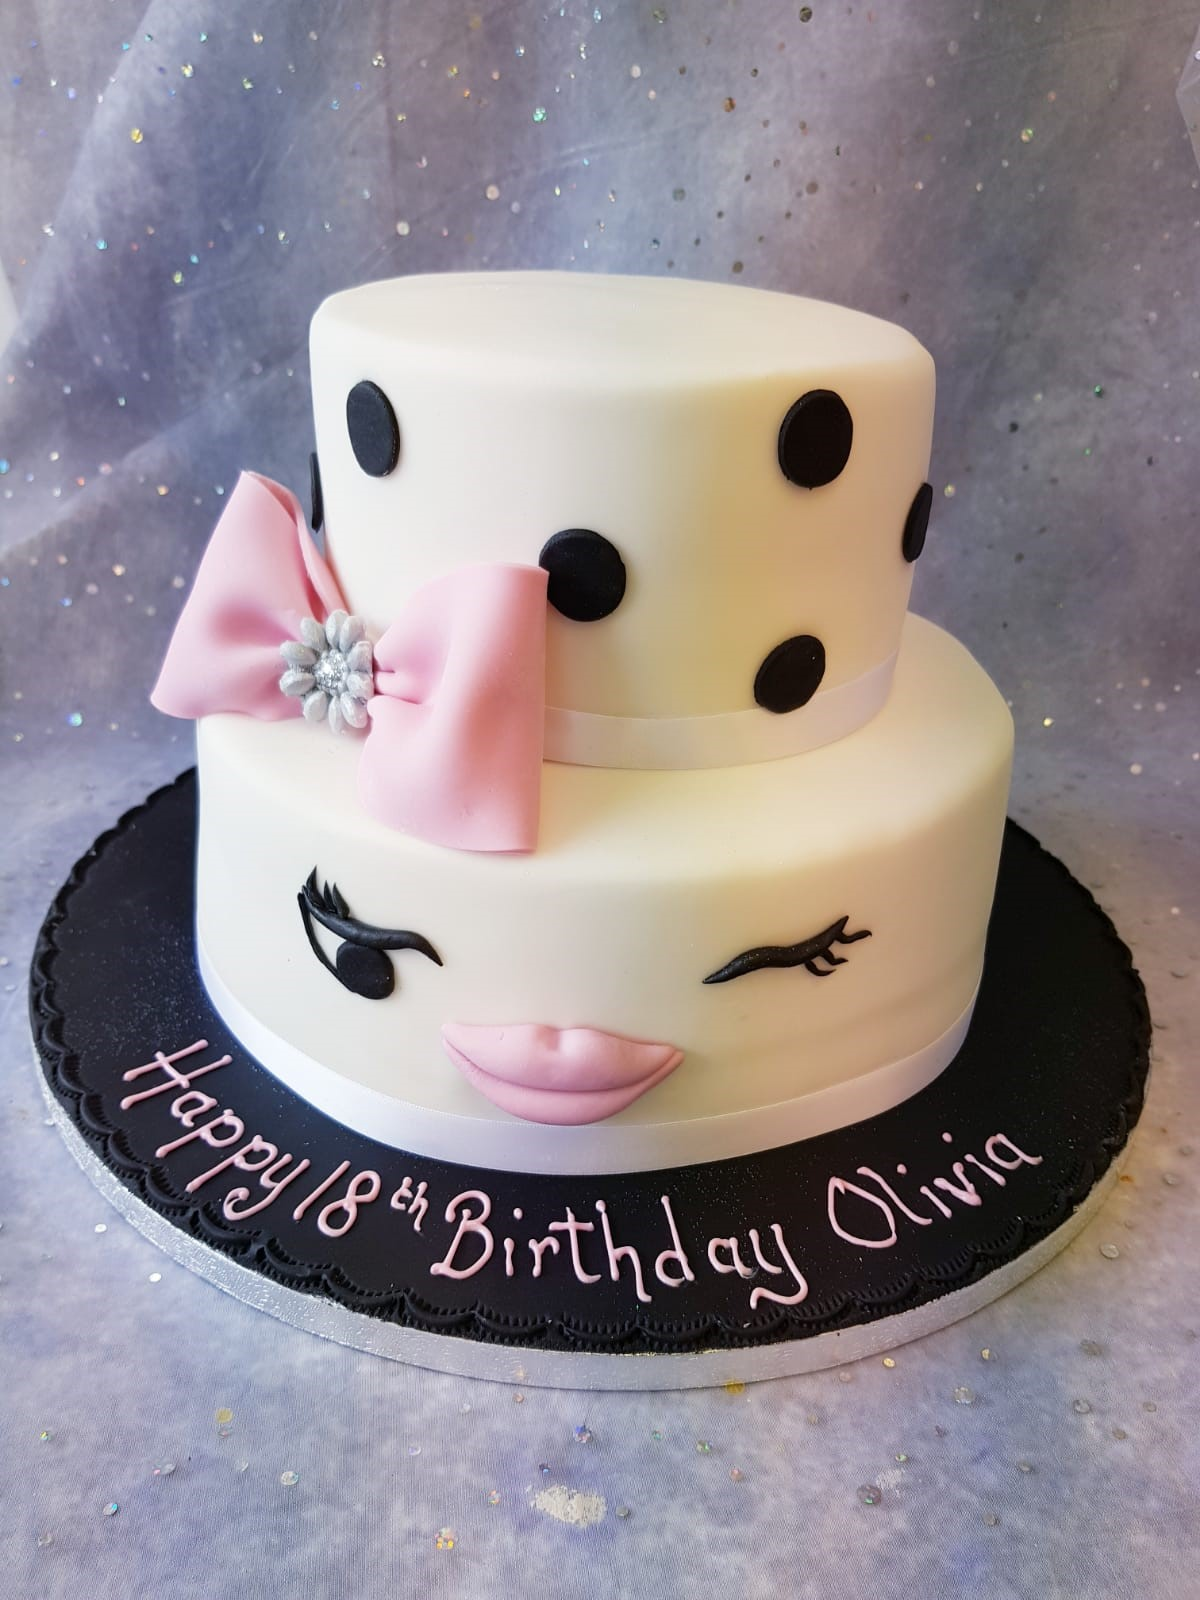 2 Tier Cake Eyelash Lips